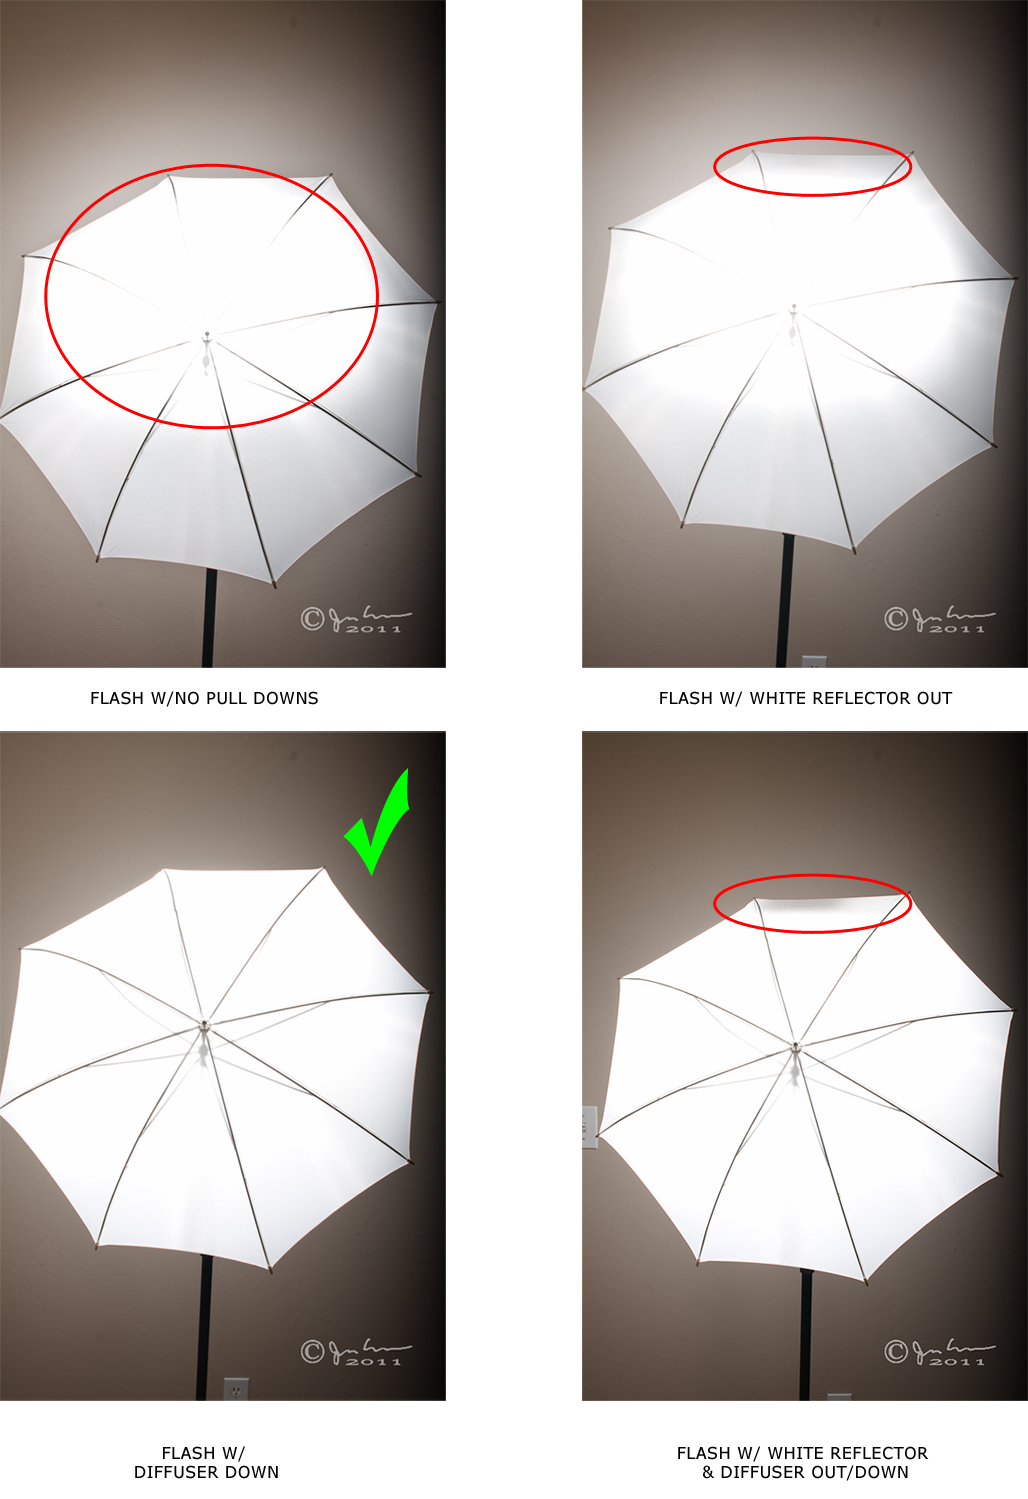 How To Use Umbrella Lights Sideside Comparisons  Studio Set Up  Pinterest